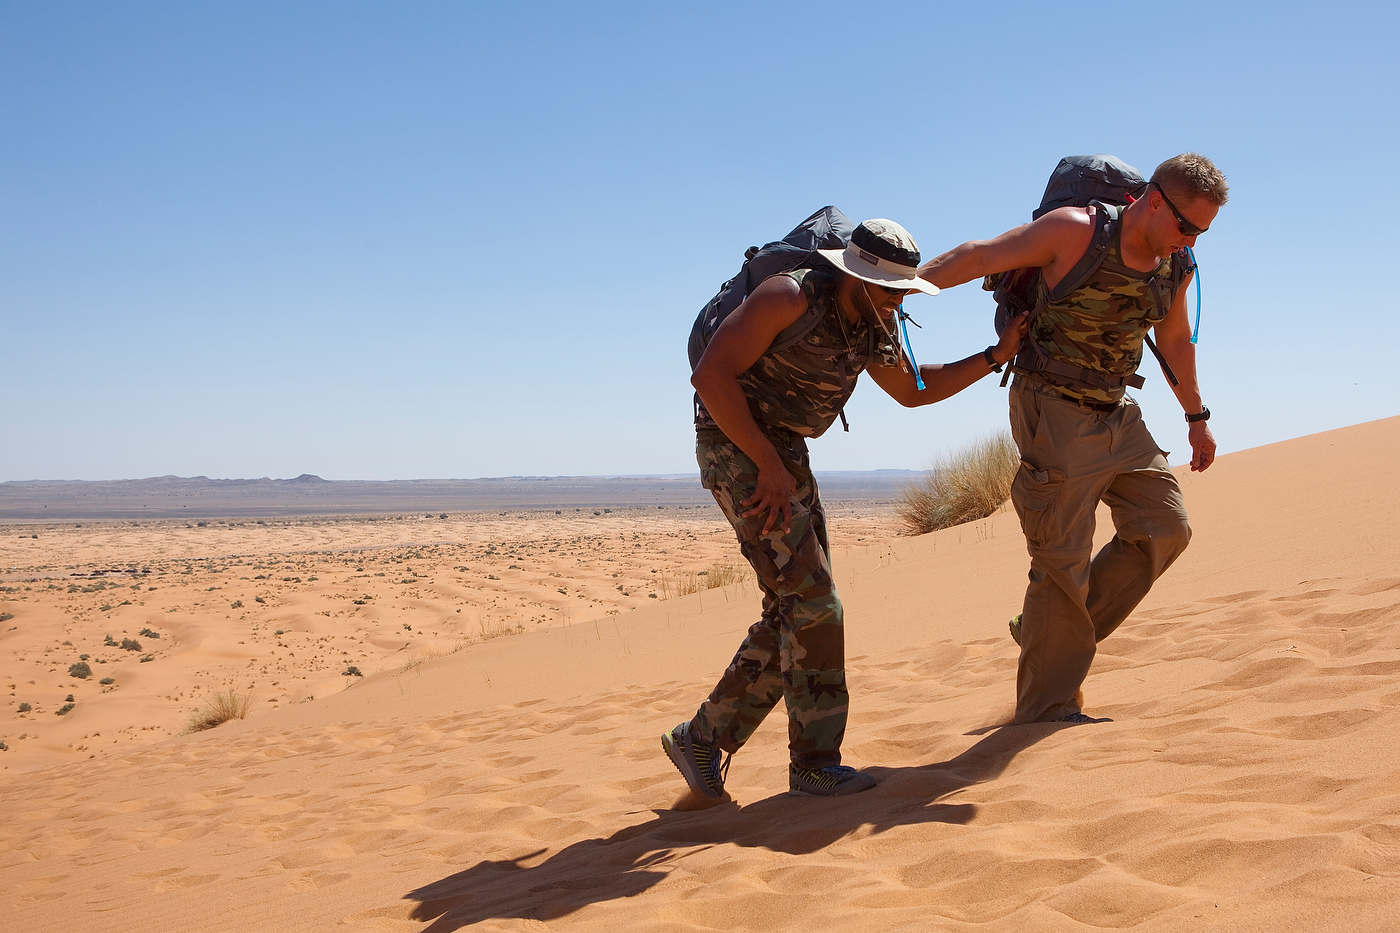 Team Country Boys struggles in stage one's heat in the Merzouga Dunes, Sahara Desert.